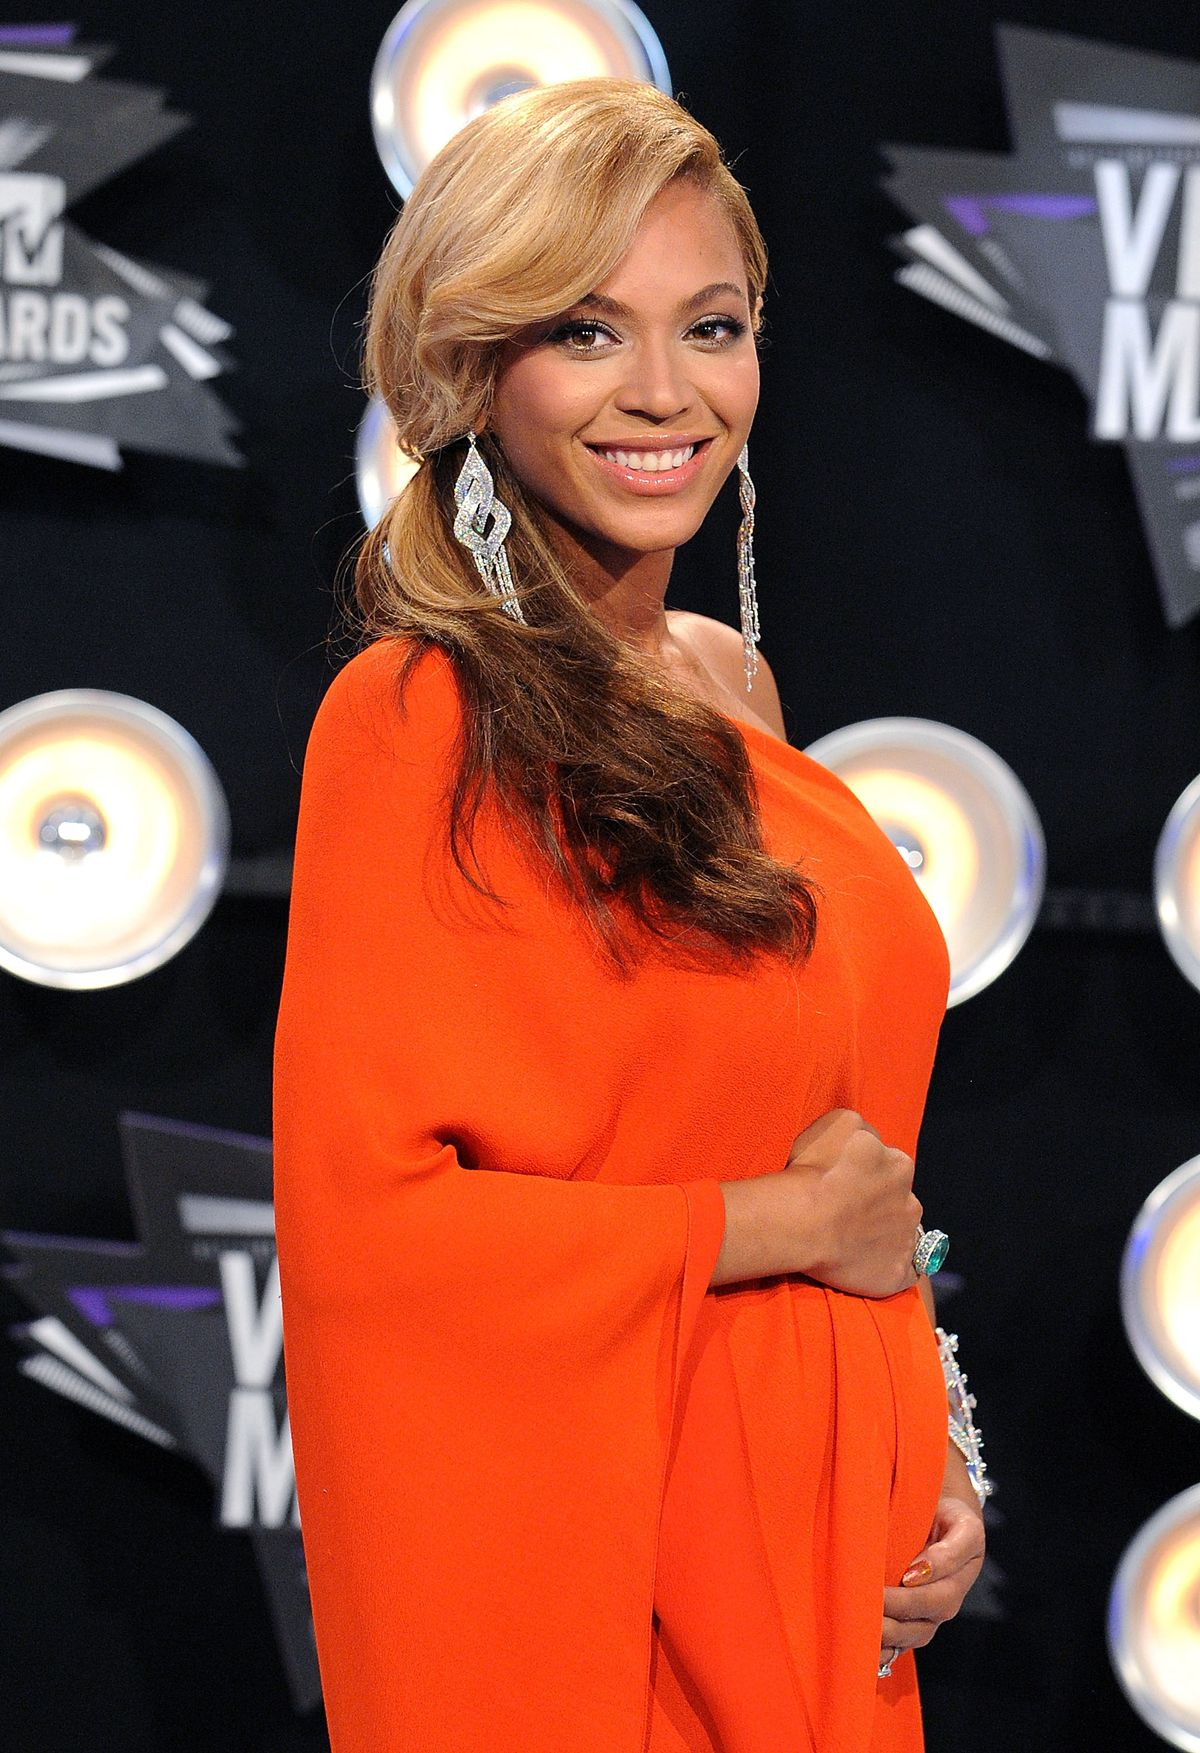 LOS ANGELES, CA - AUGUST 28: Actress/singer Beyonce arrives at the 2011 MTV Video Music Awards held at Nokia Theatre L.A. Live on August 28, 2011 in Los Angeles, California. (Photo by Jon Kopaloff/FilmMagic)